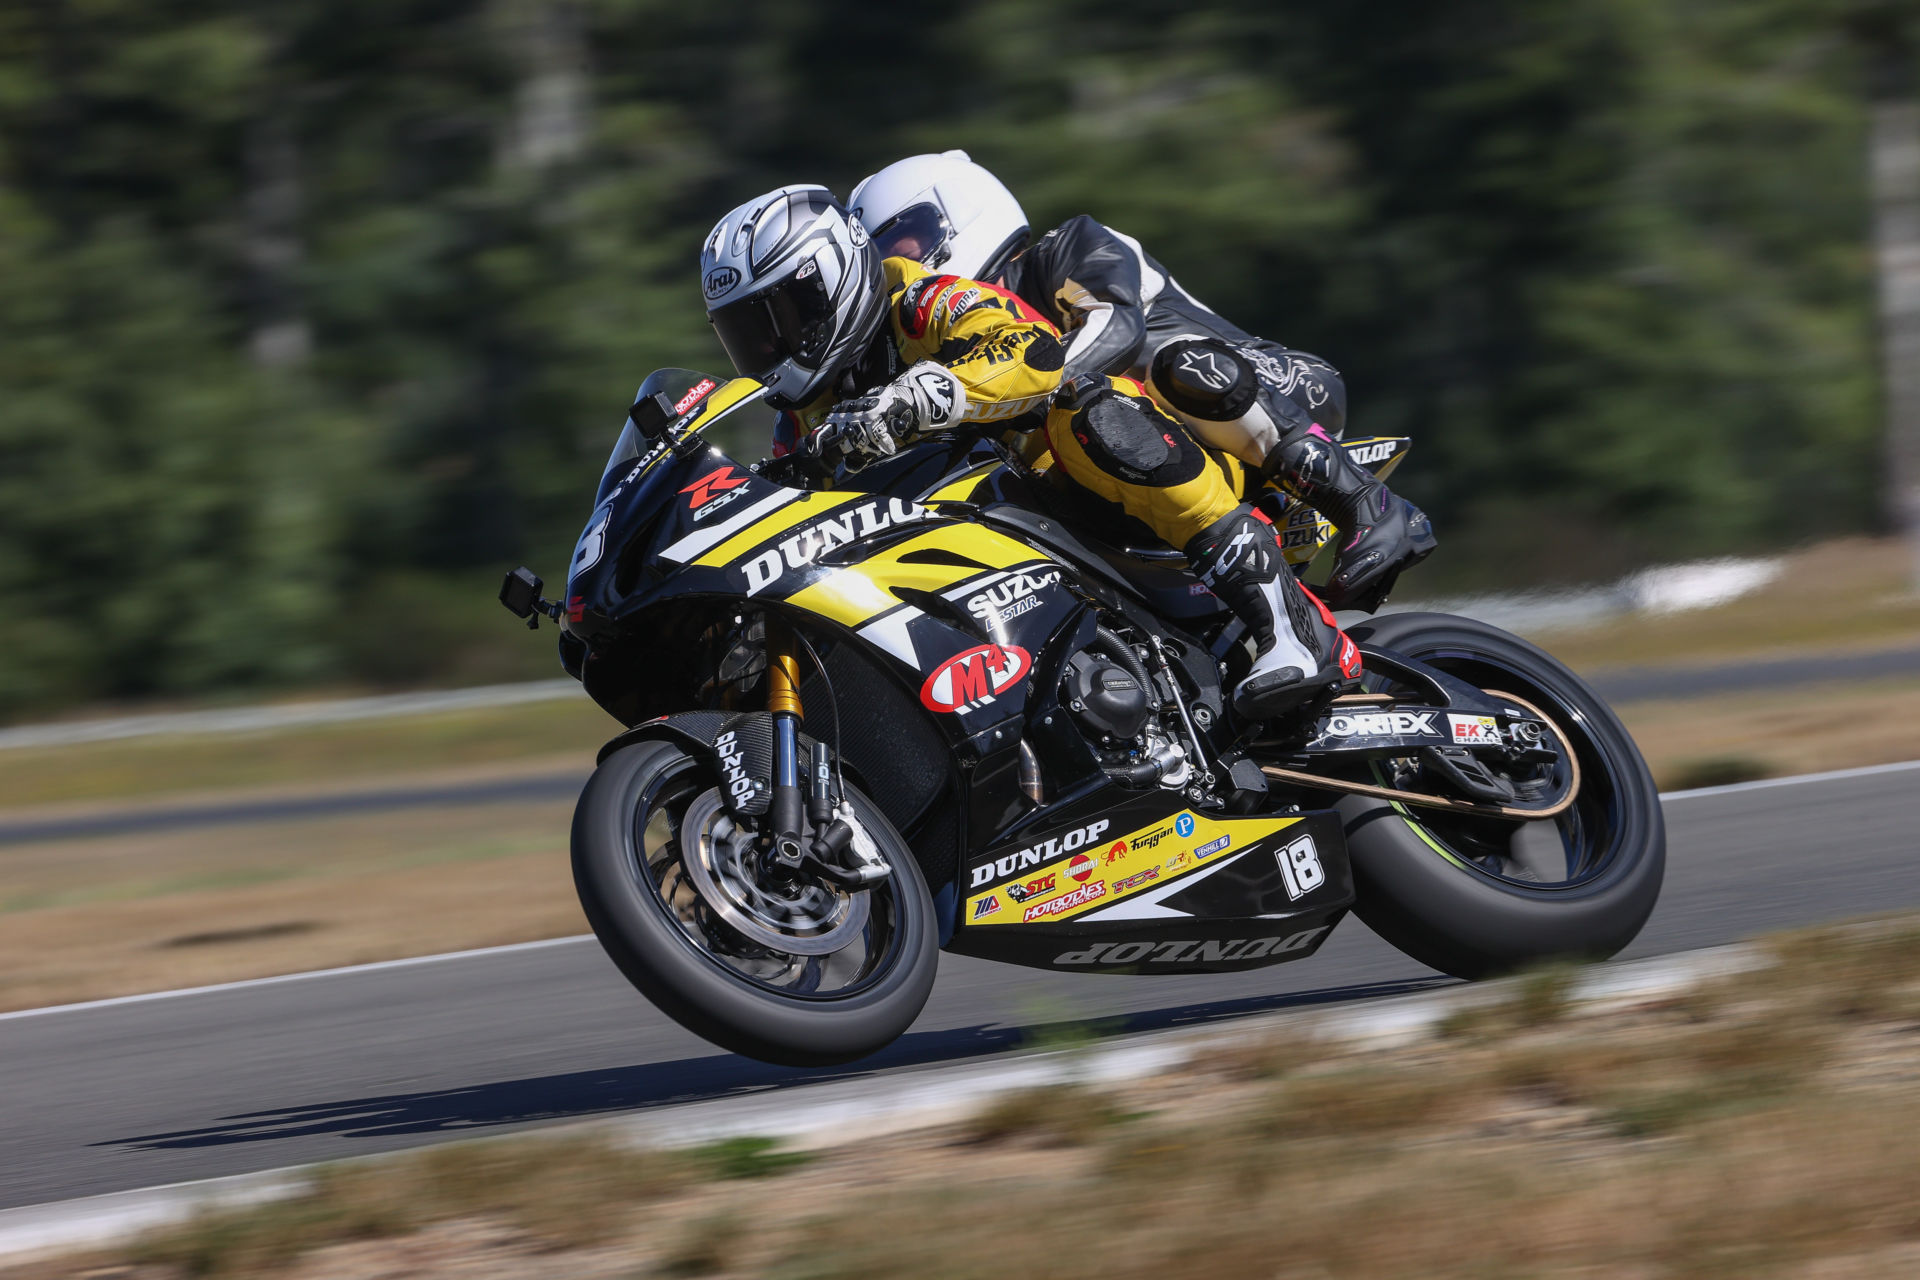 Chris Ulrich pilots the Dunlop Two-Seat Superbike during 2020. Photo By Brian J Nelson.